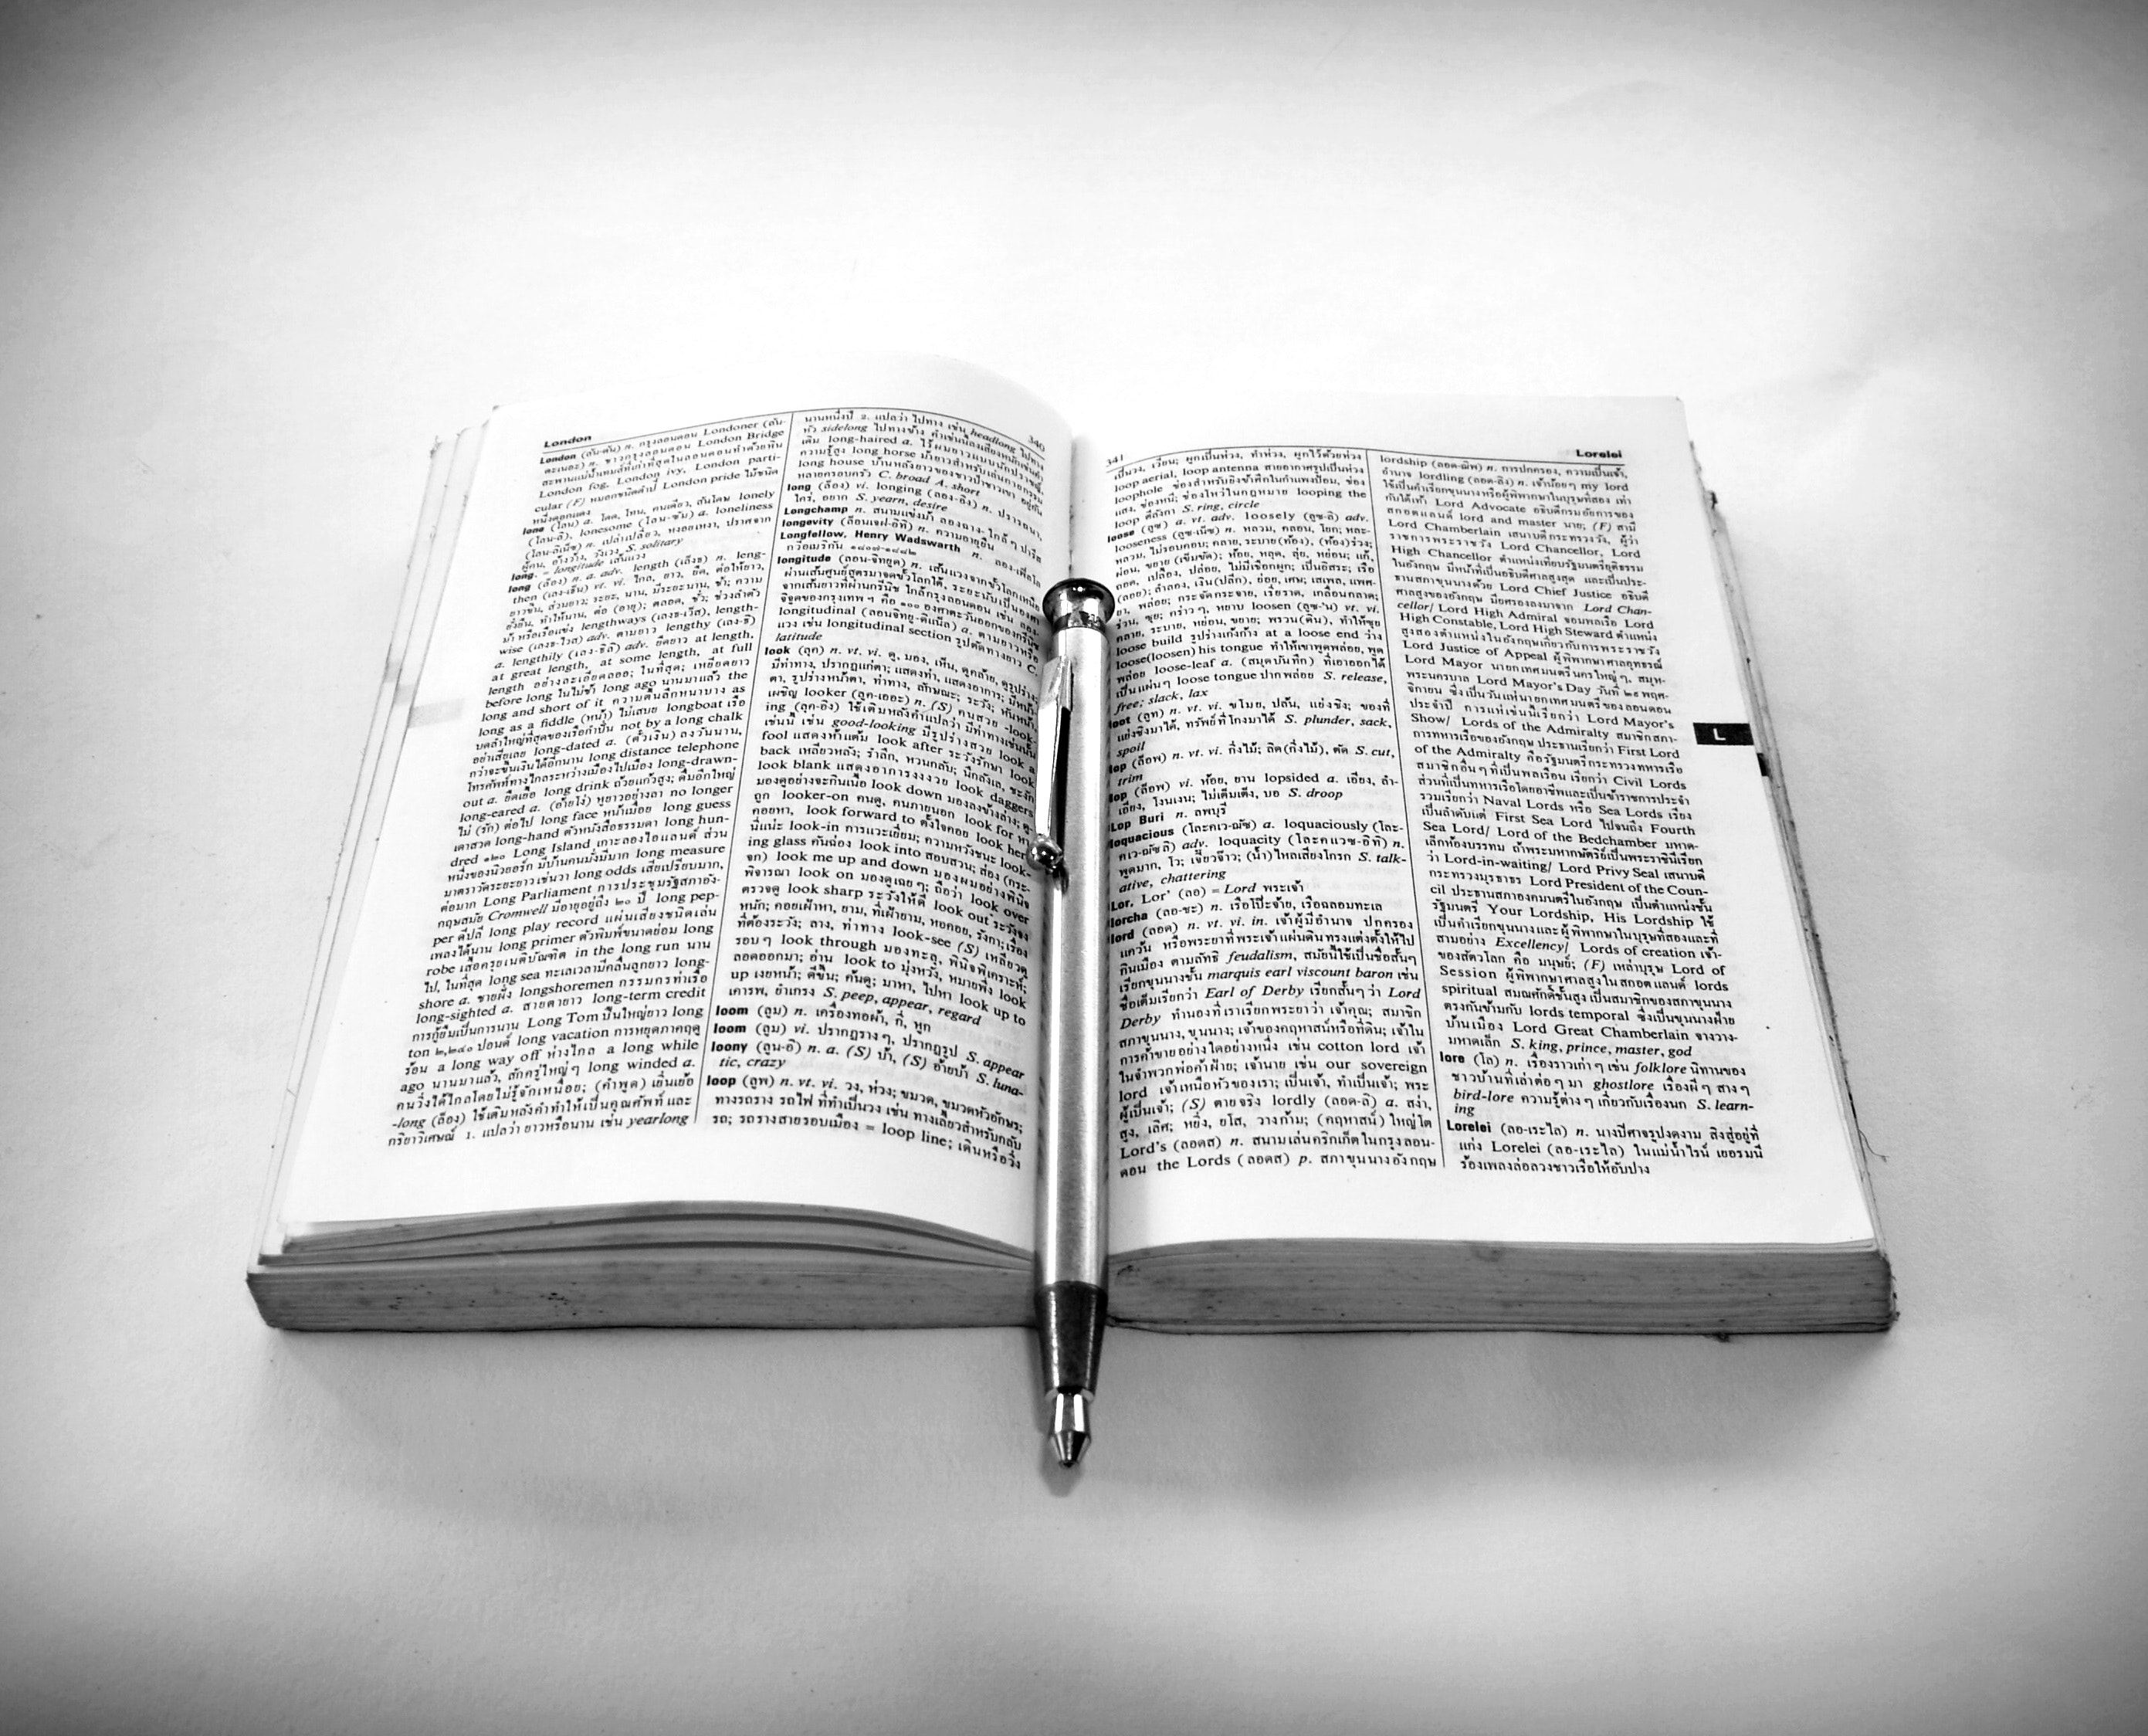 Grayscale Photography of Click Pen on Top of Opened Book, Ballpen, Bible, Black-and-white, Book, HQ Photo